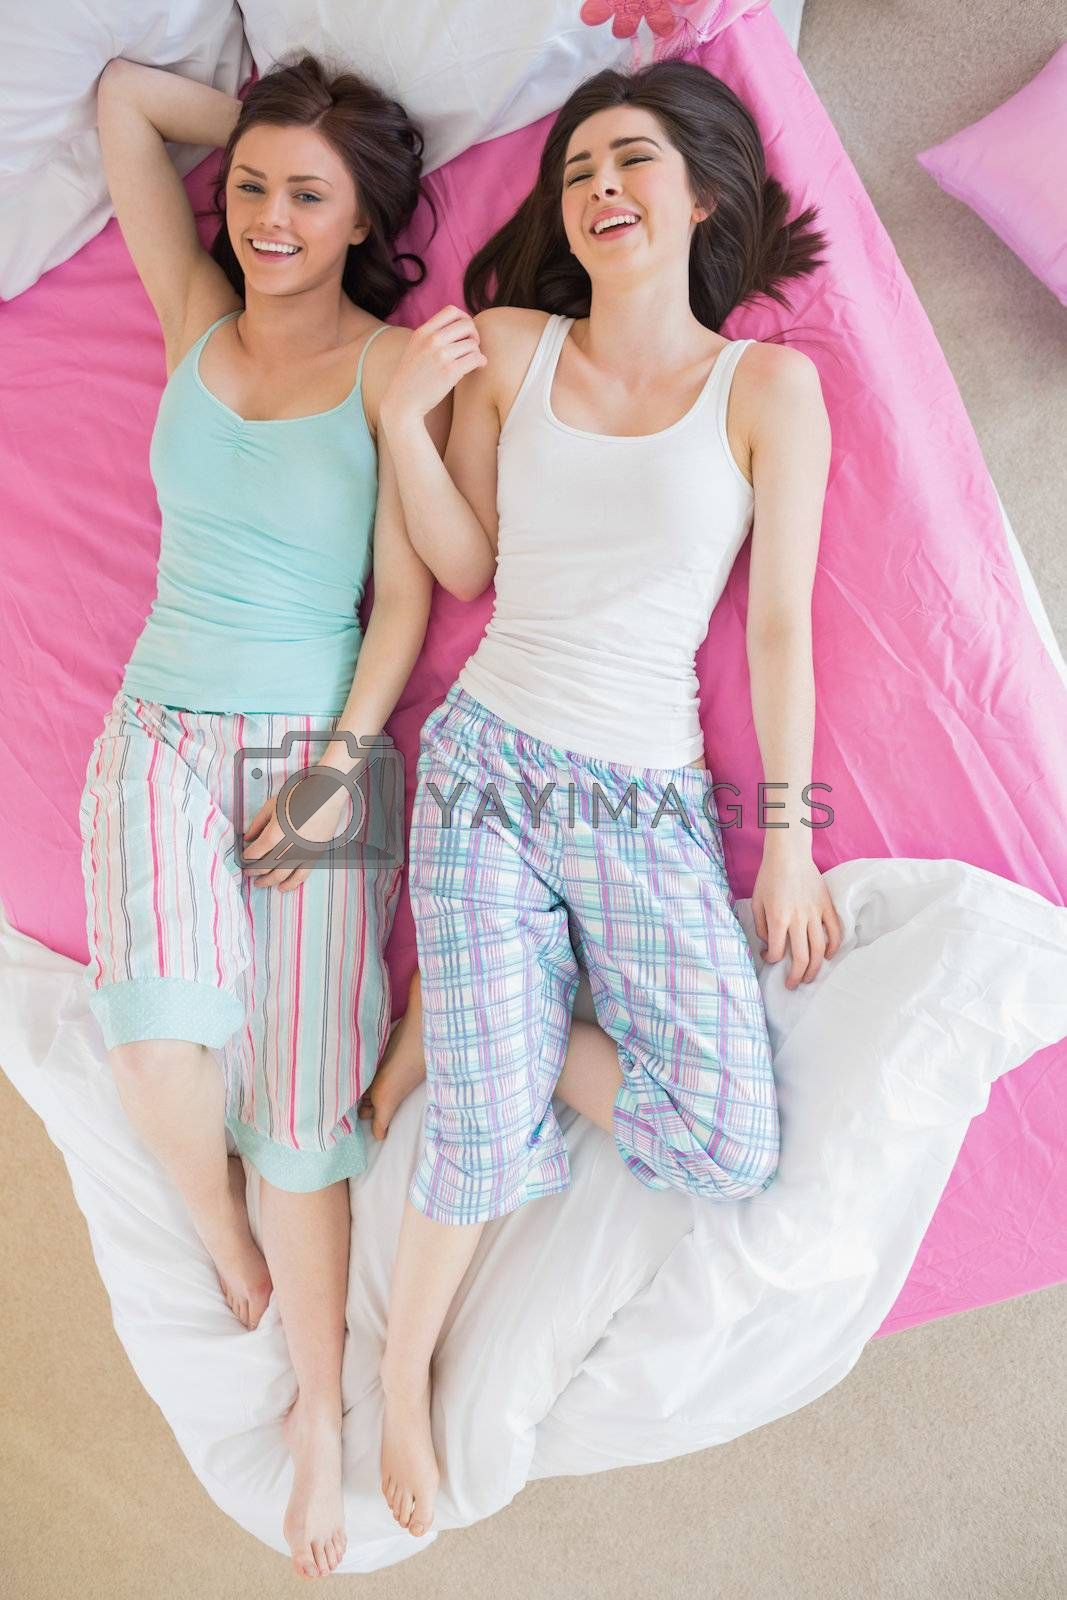 Close friends in pajamas lying on bed and laughing by Wavebreakmedia